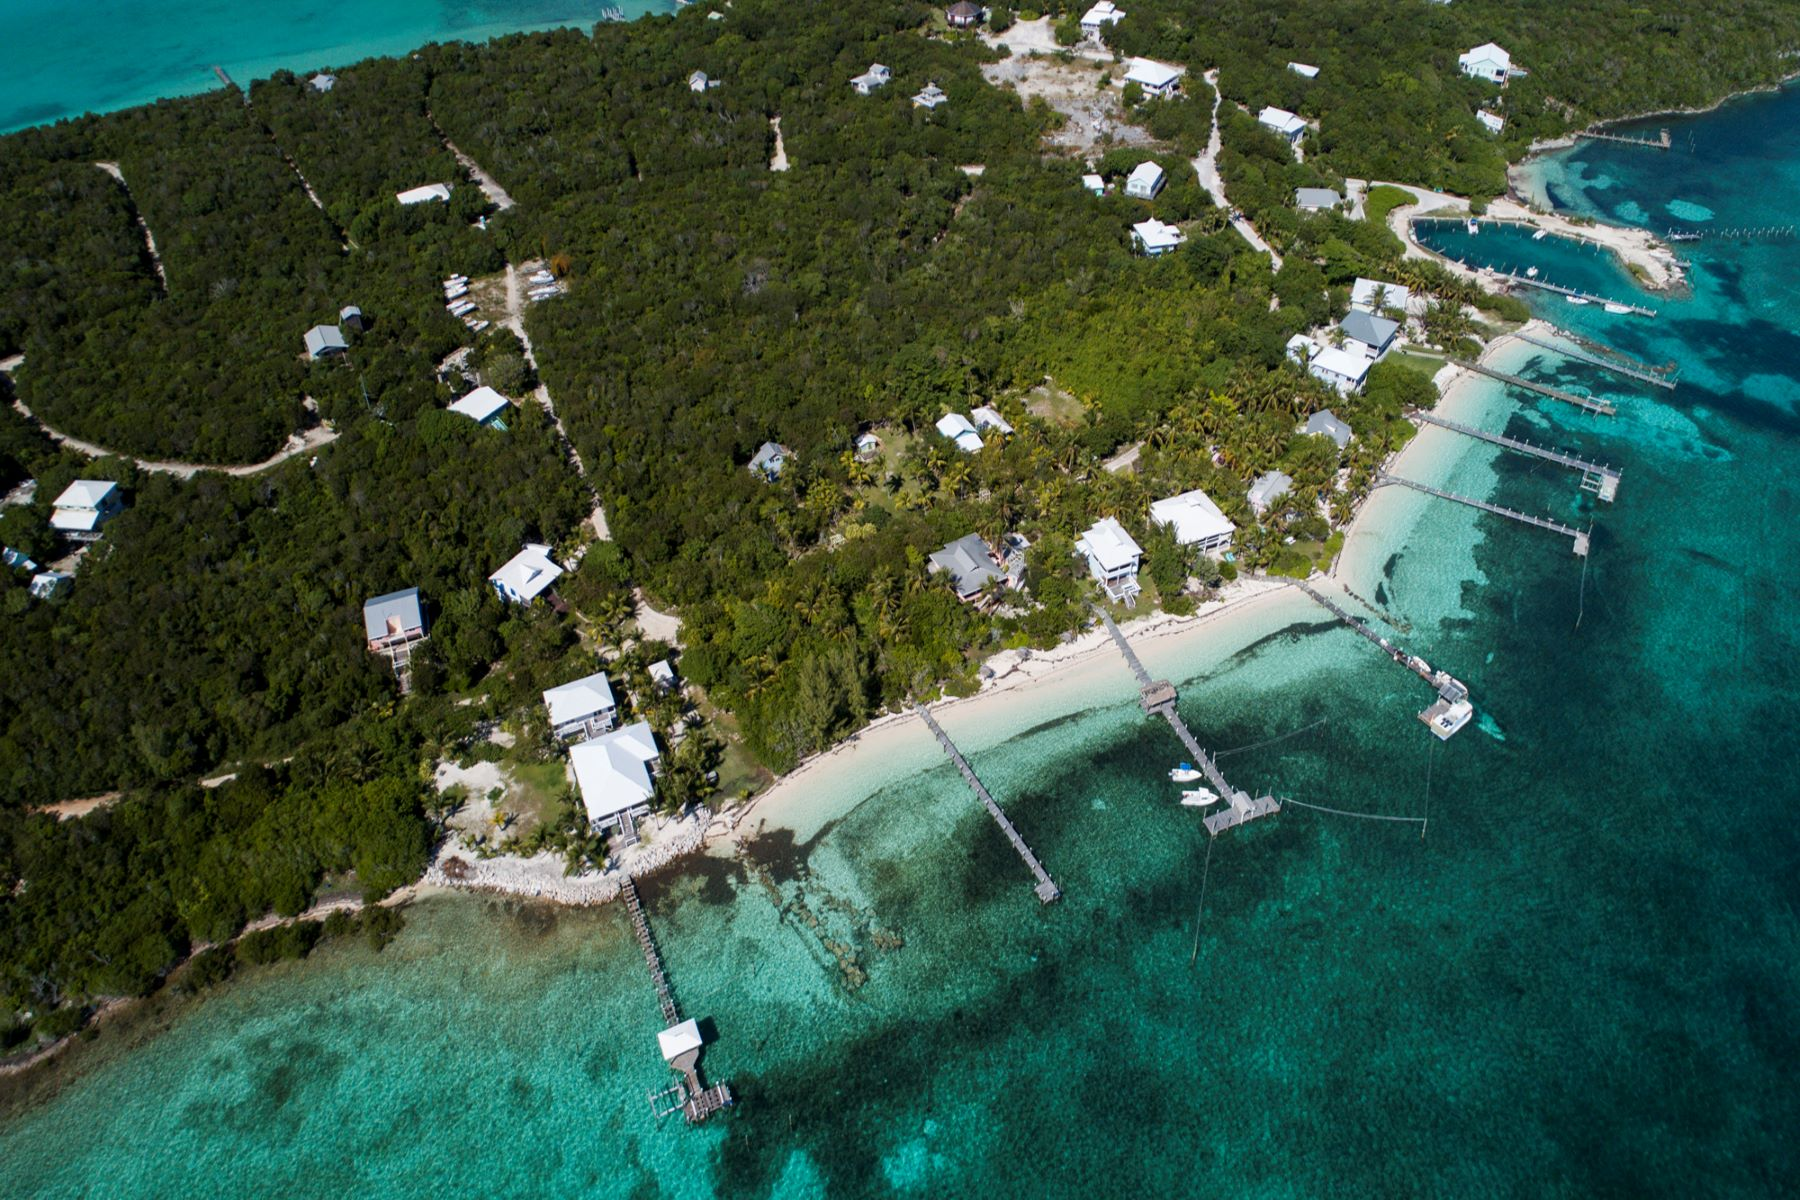 Land for Sale at Lot 123 Abaco Ocean Club Abaco Ocean Club, Lubbers Quarters, Abaco Bahamas